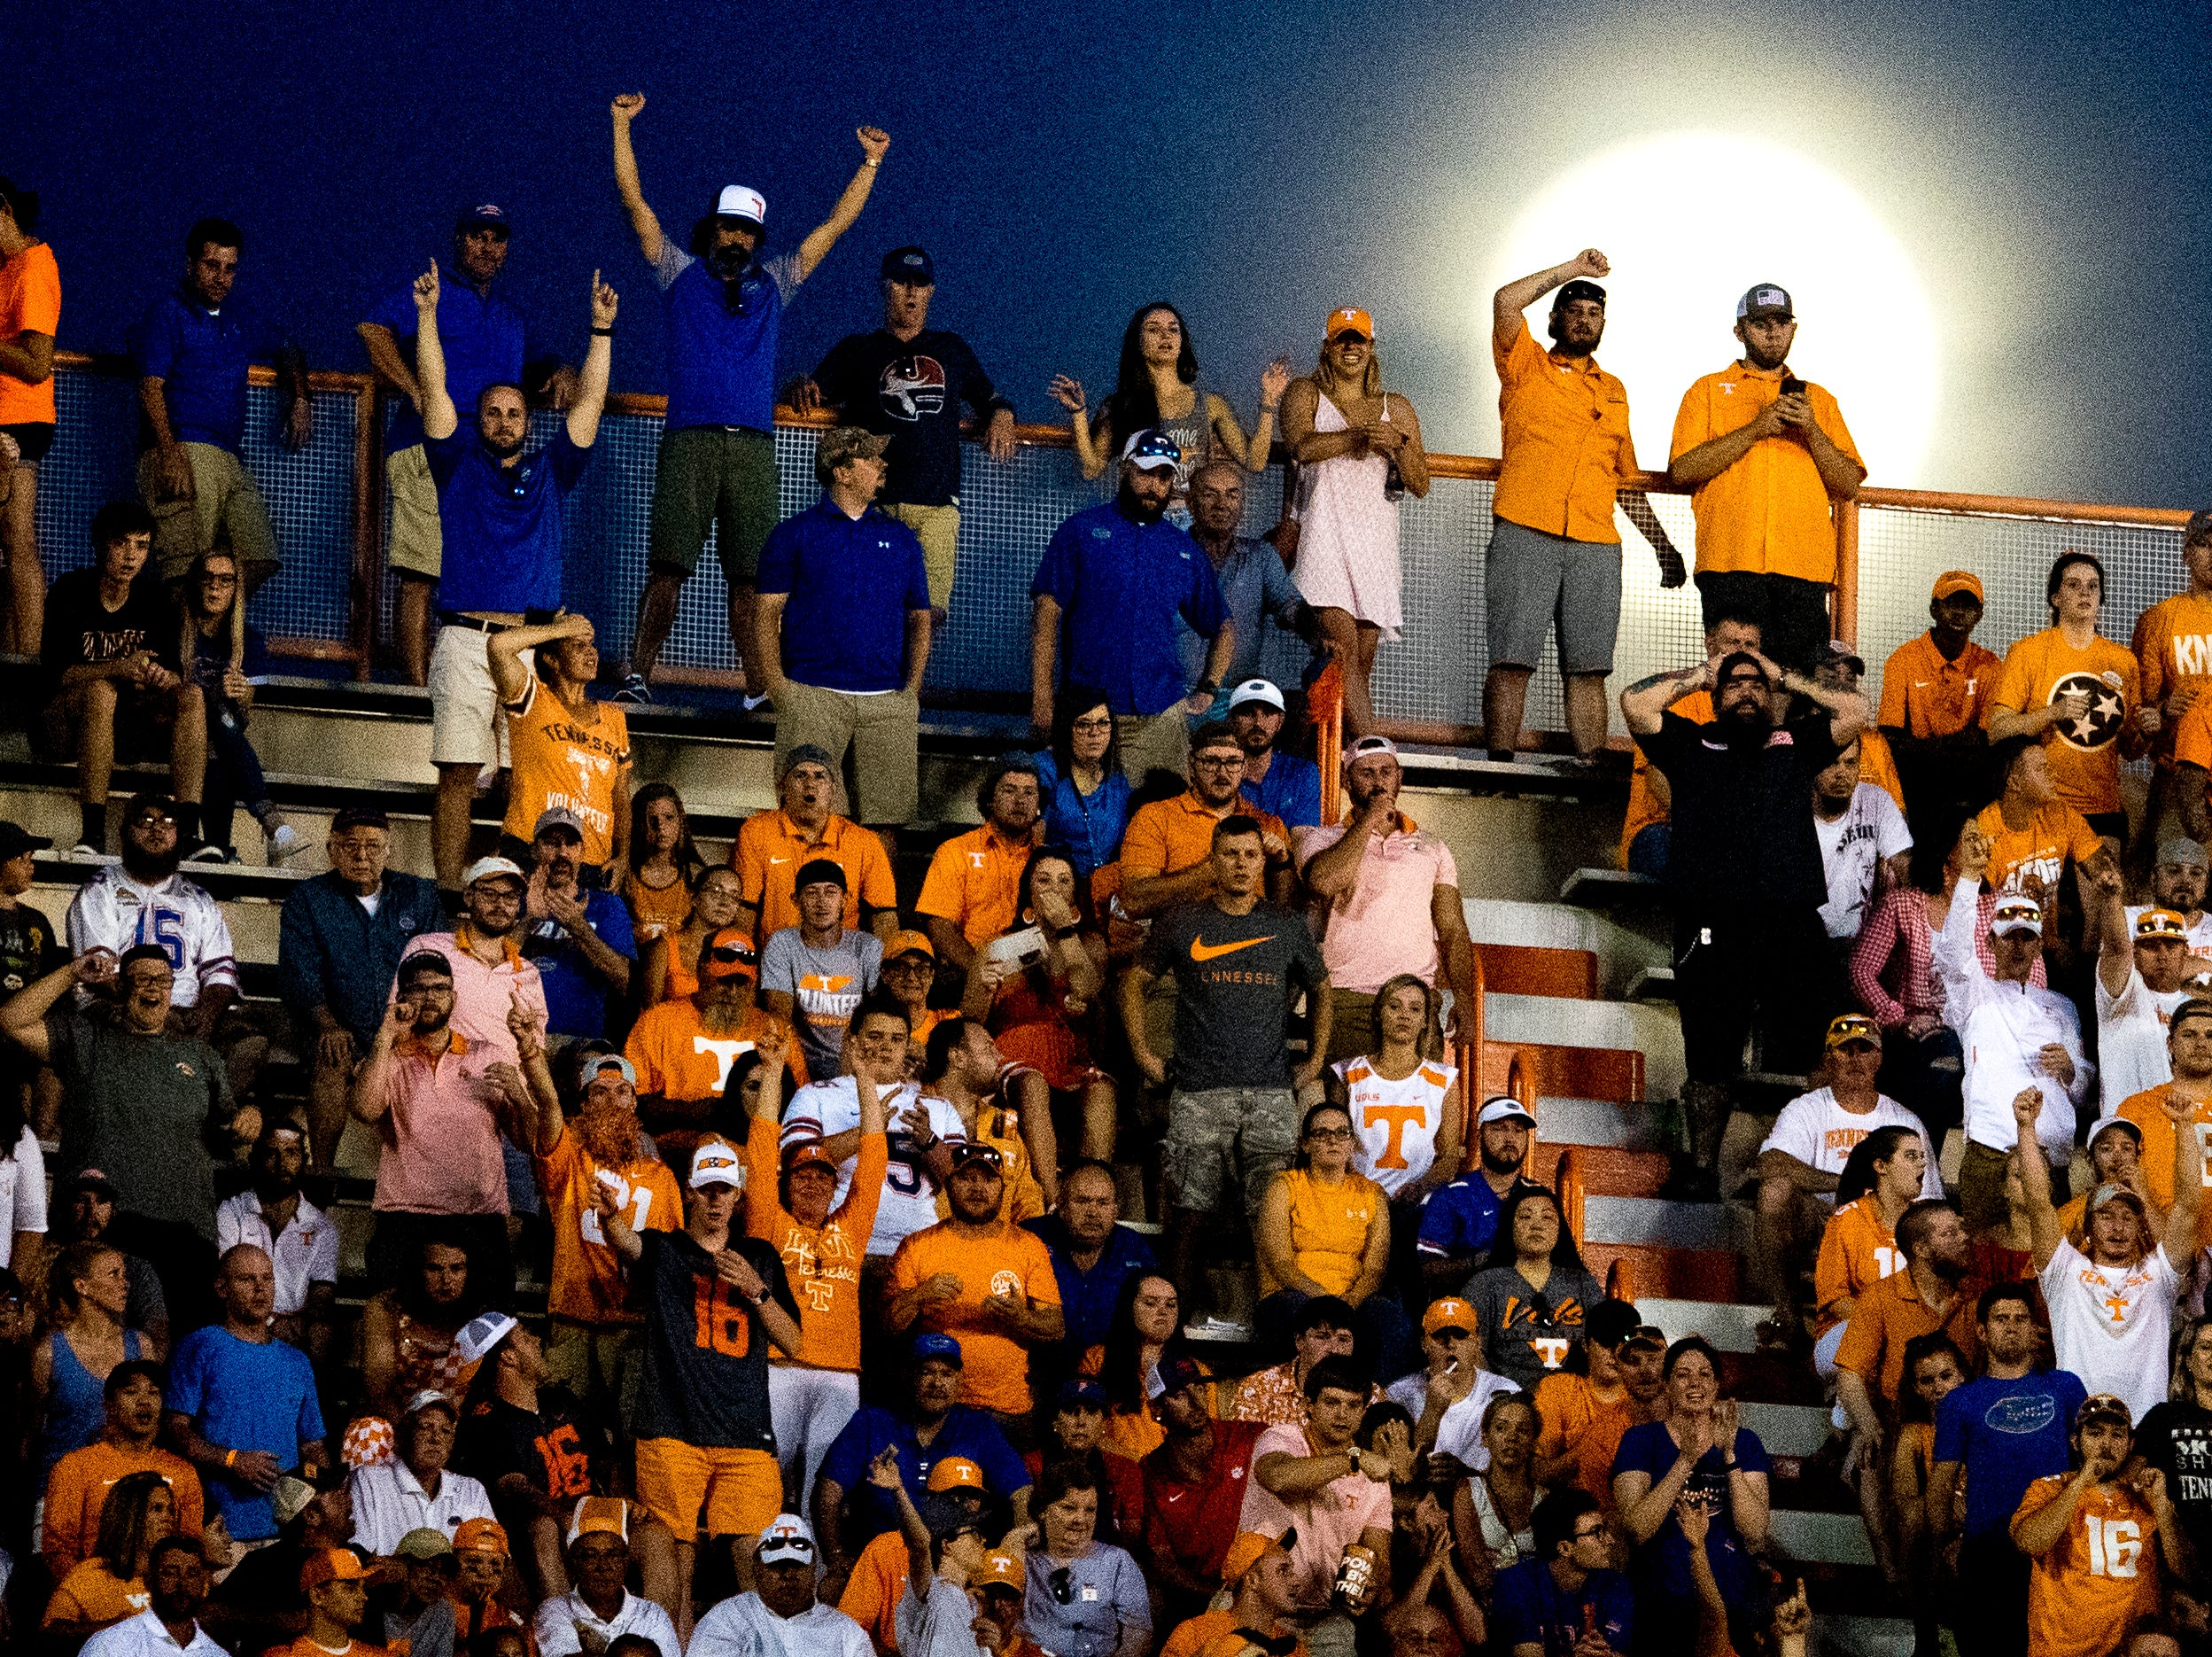 Fans cheer in the stands as the moon rises in the sky during a game between Tennessee and Florida at Neyland Stadium in Knoxville, Tennessee on Saturday, September 22, 2018.